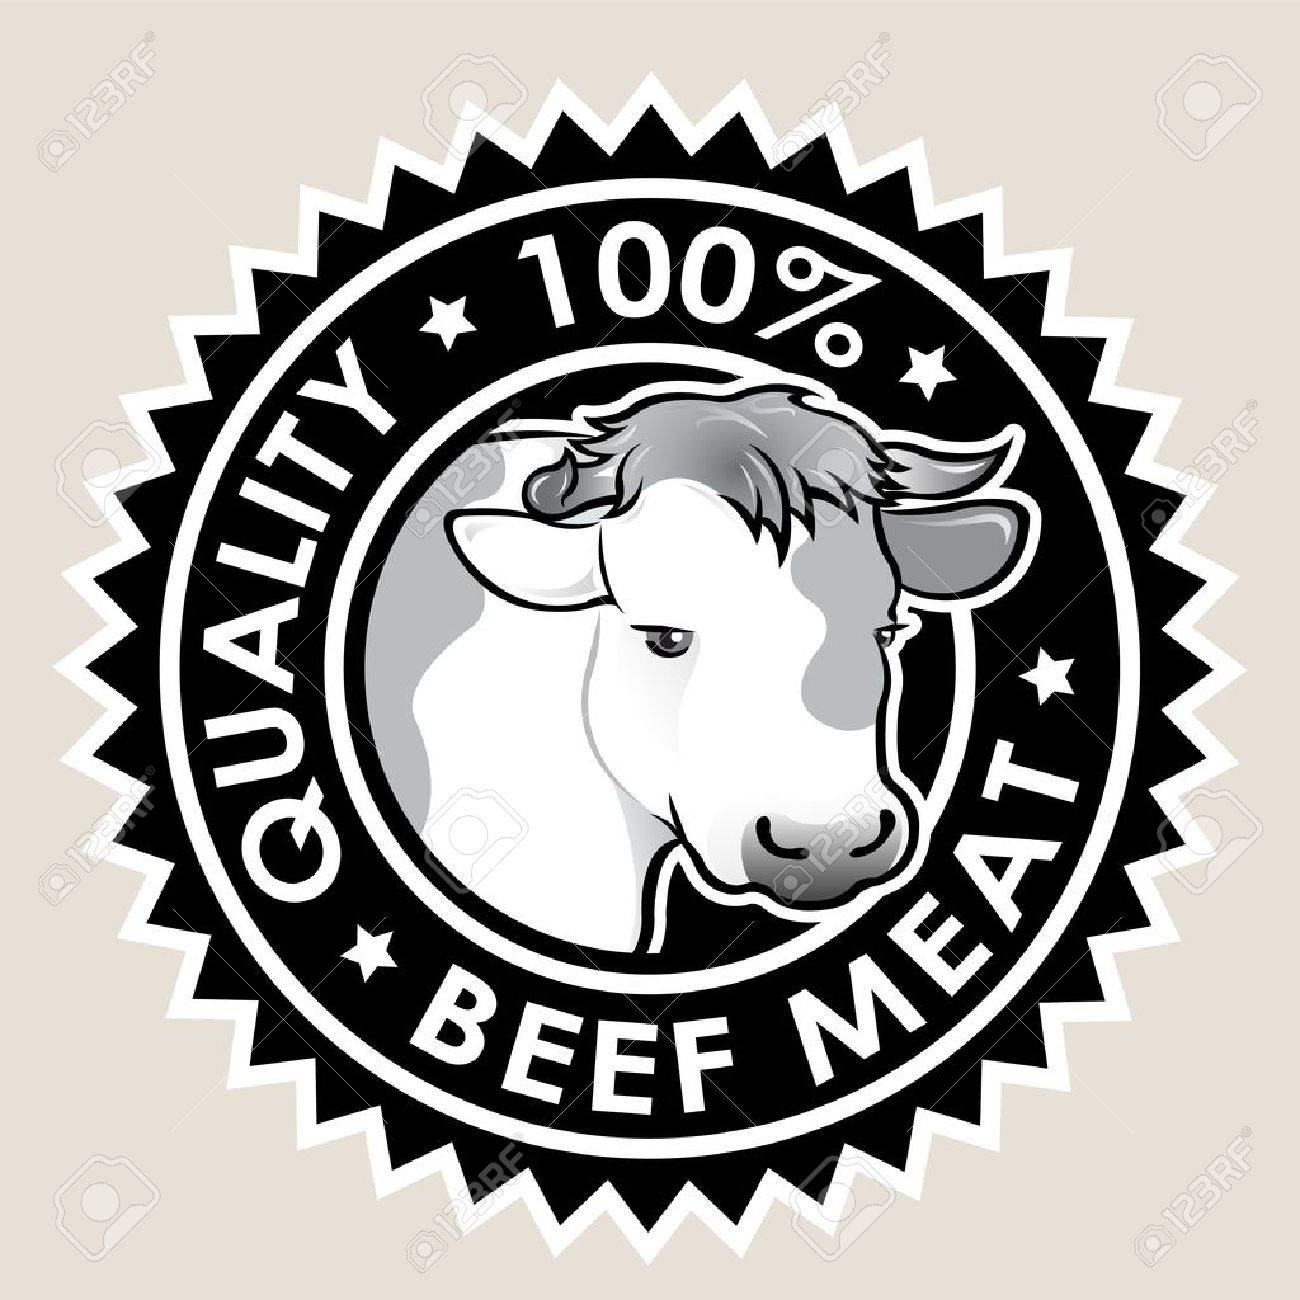 Beef Meat Quality 100% Seal Stock Vector - 13848598